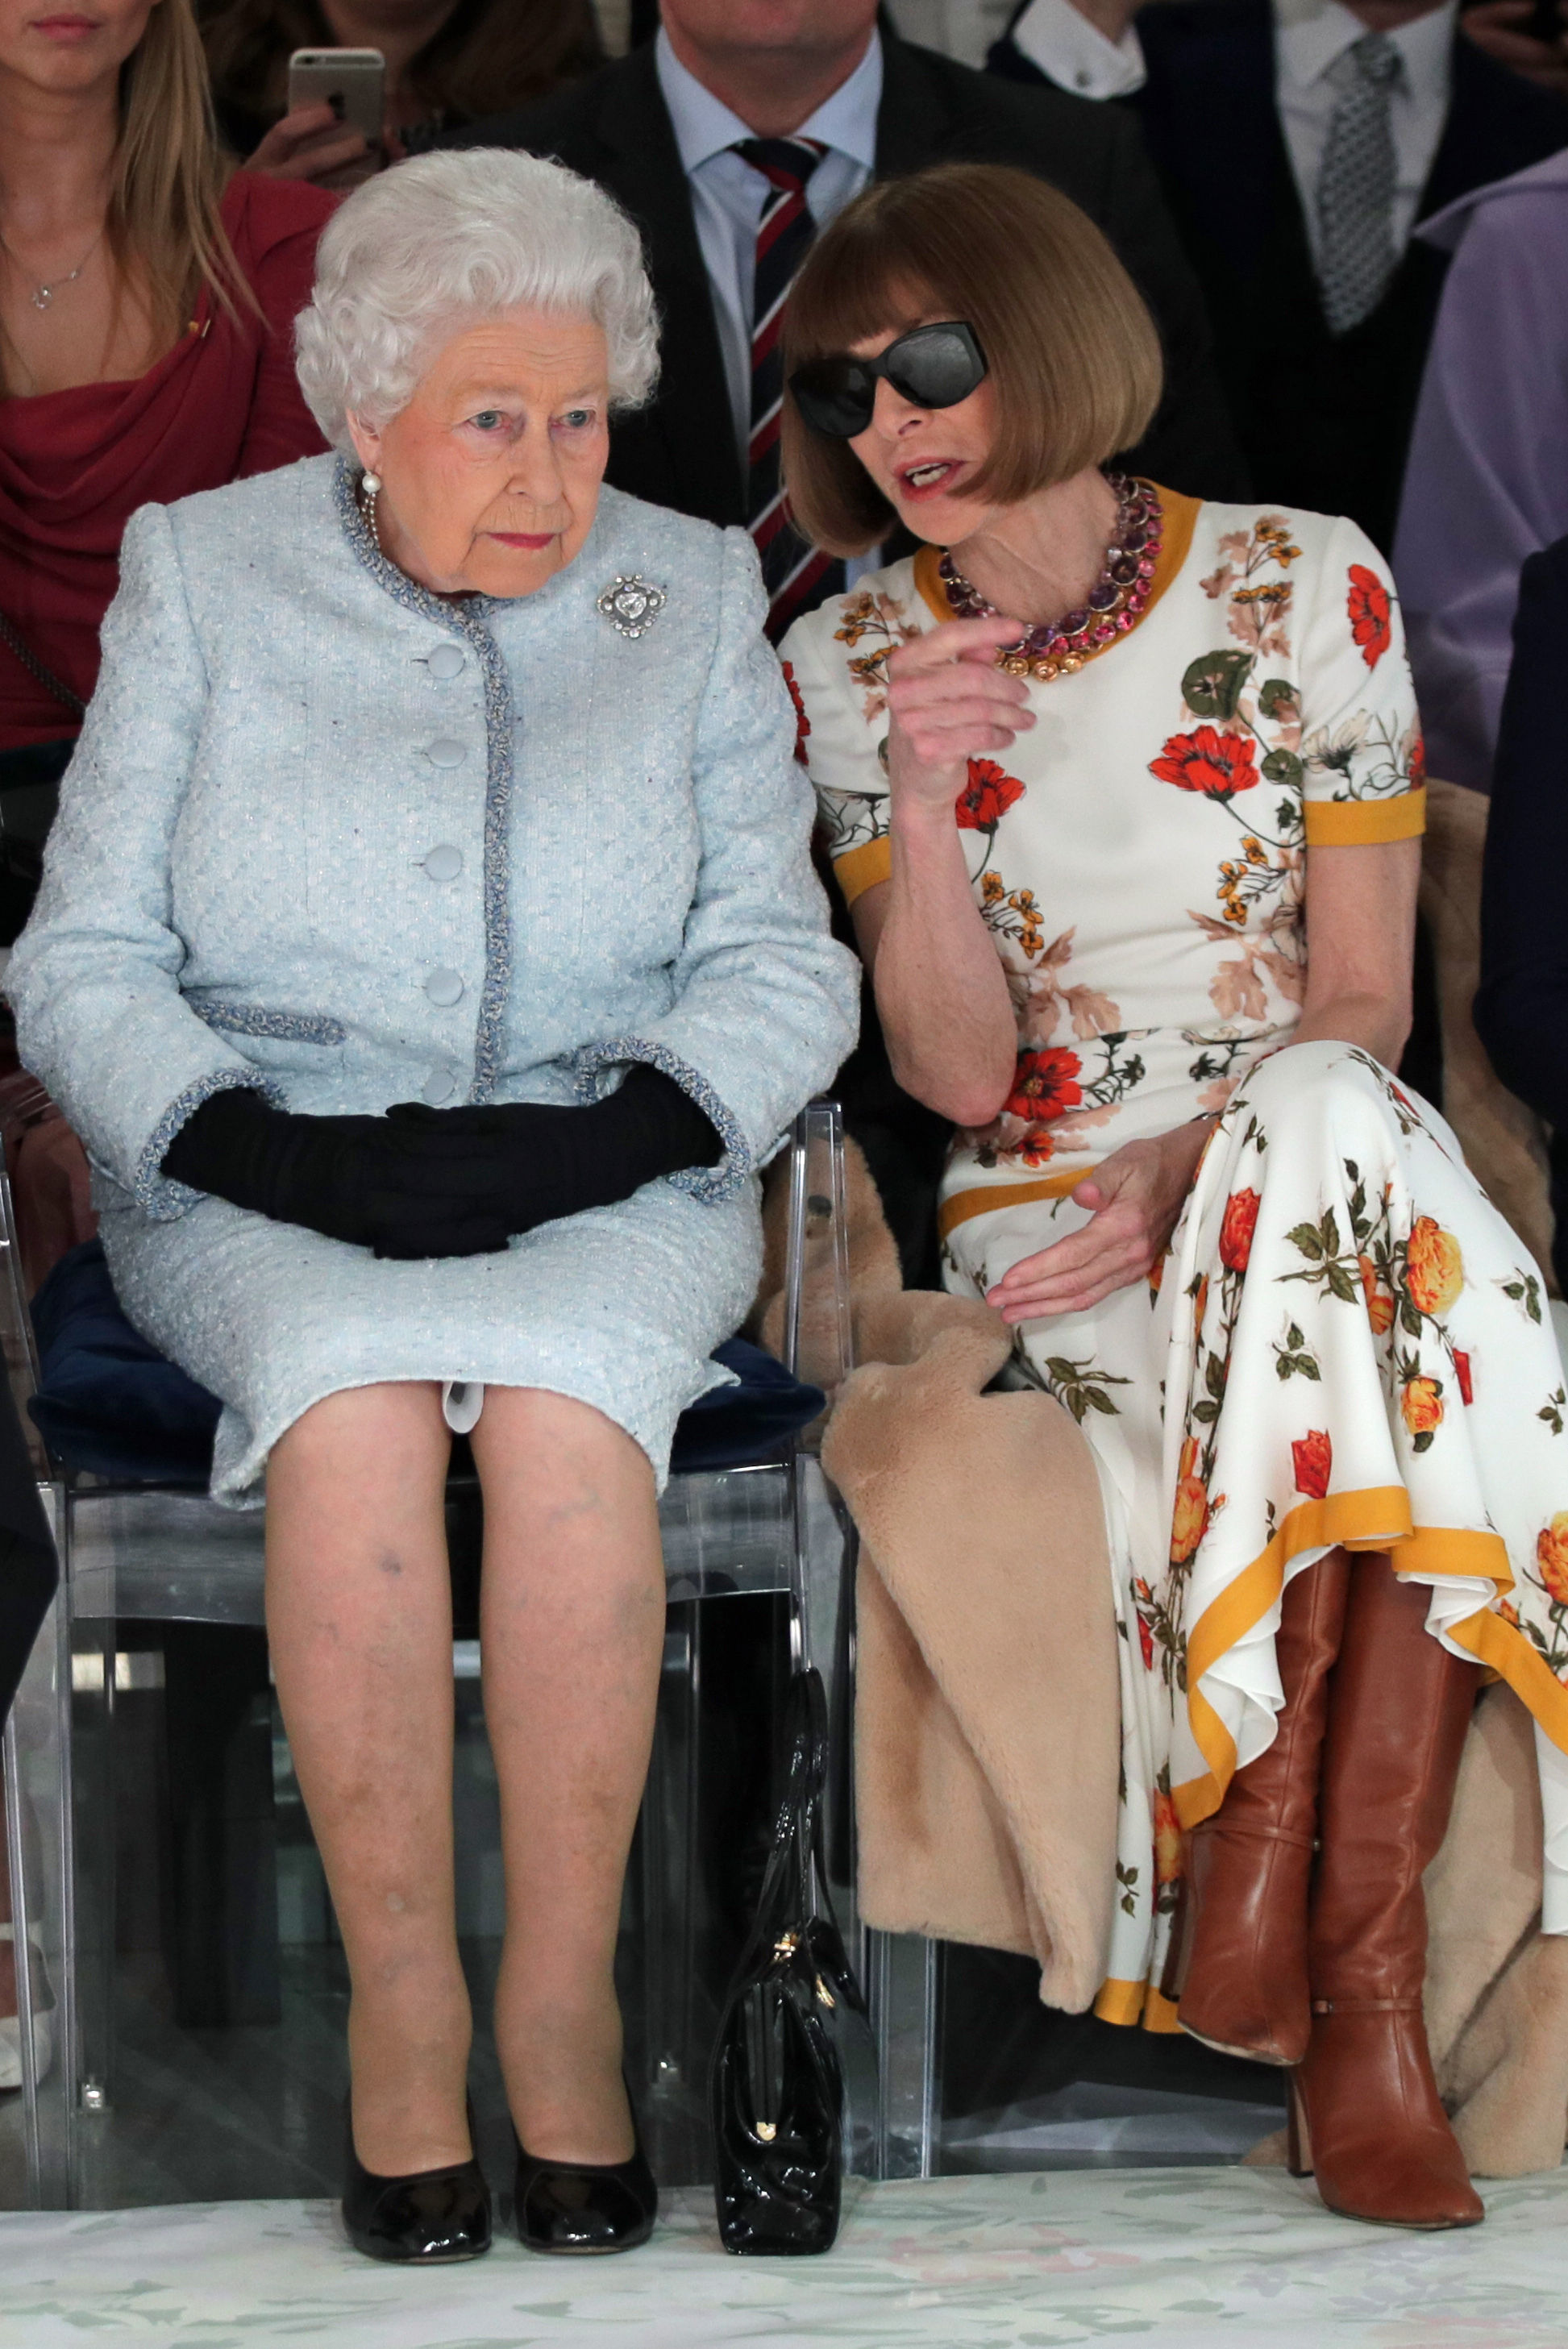 The Queen sits next to Anna Wintour, who is speaking